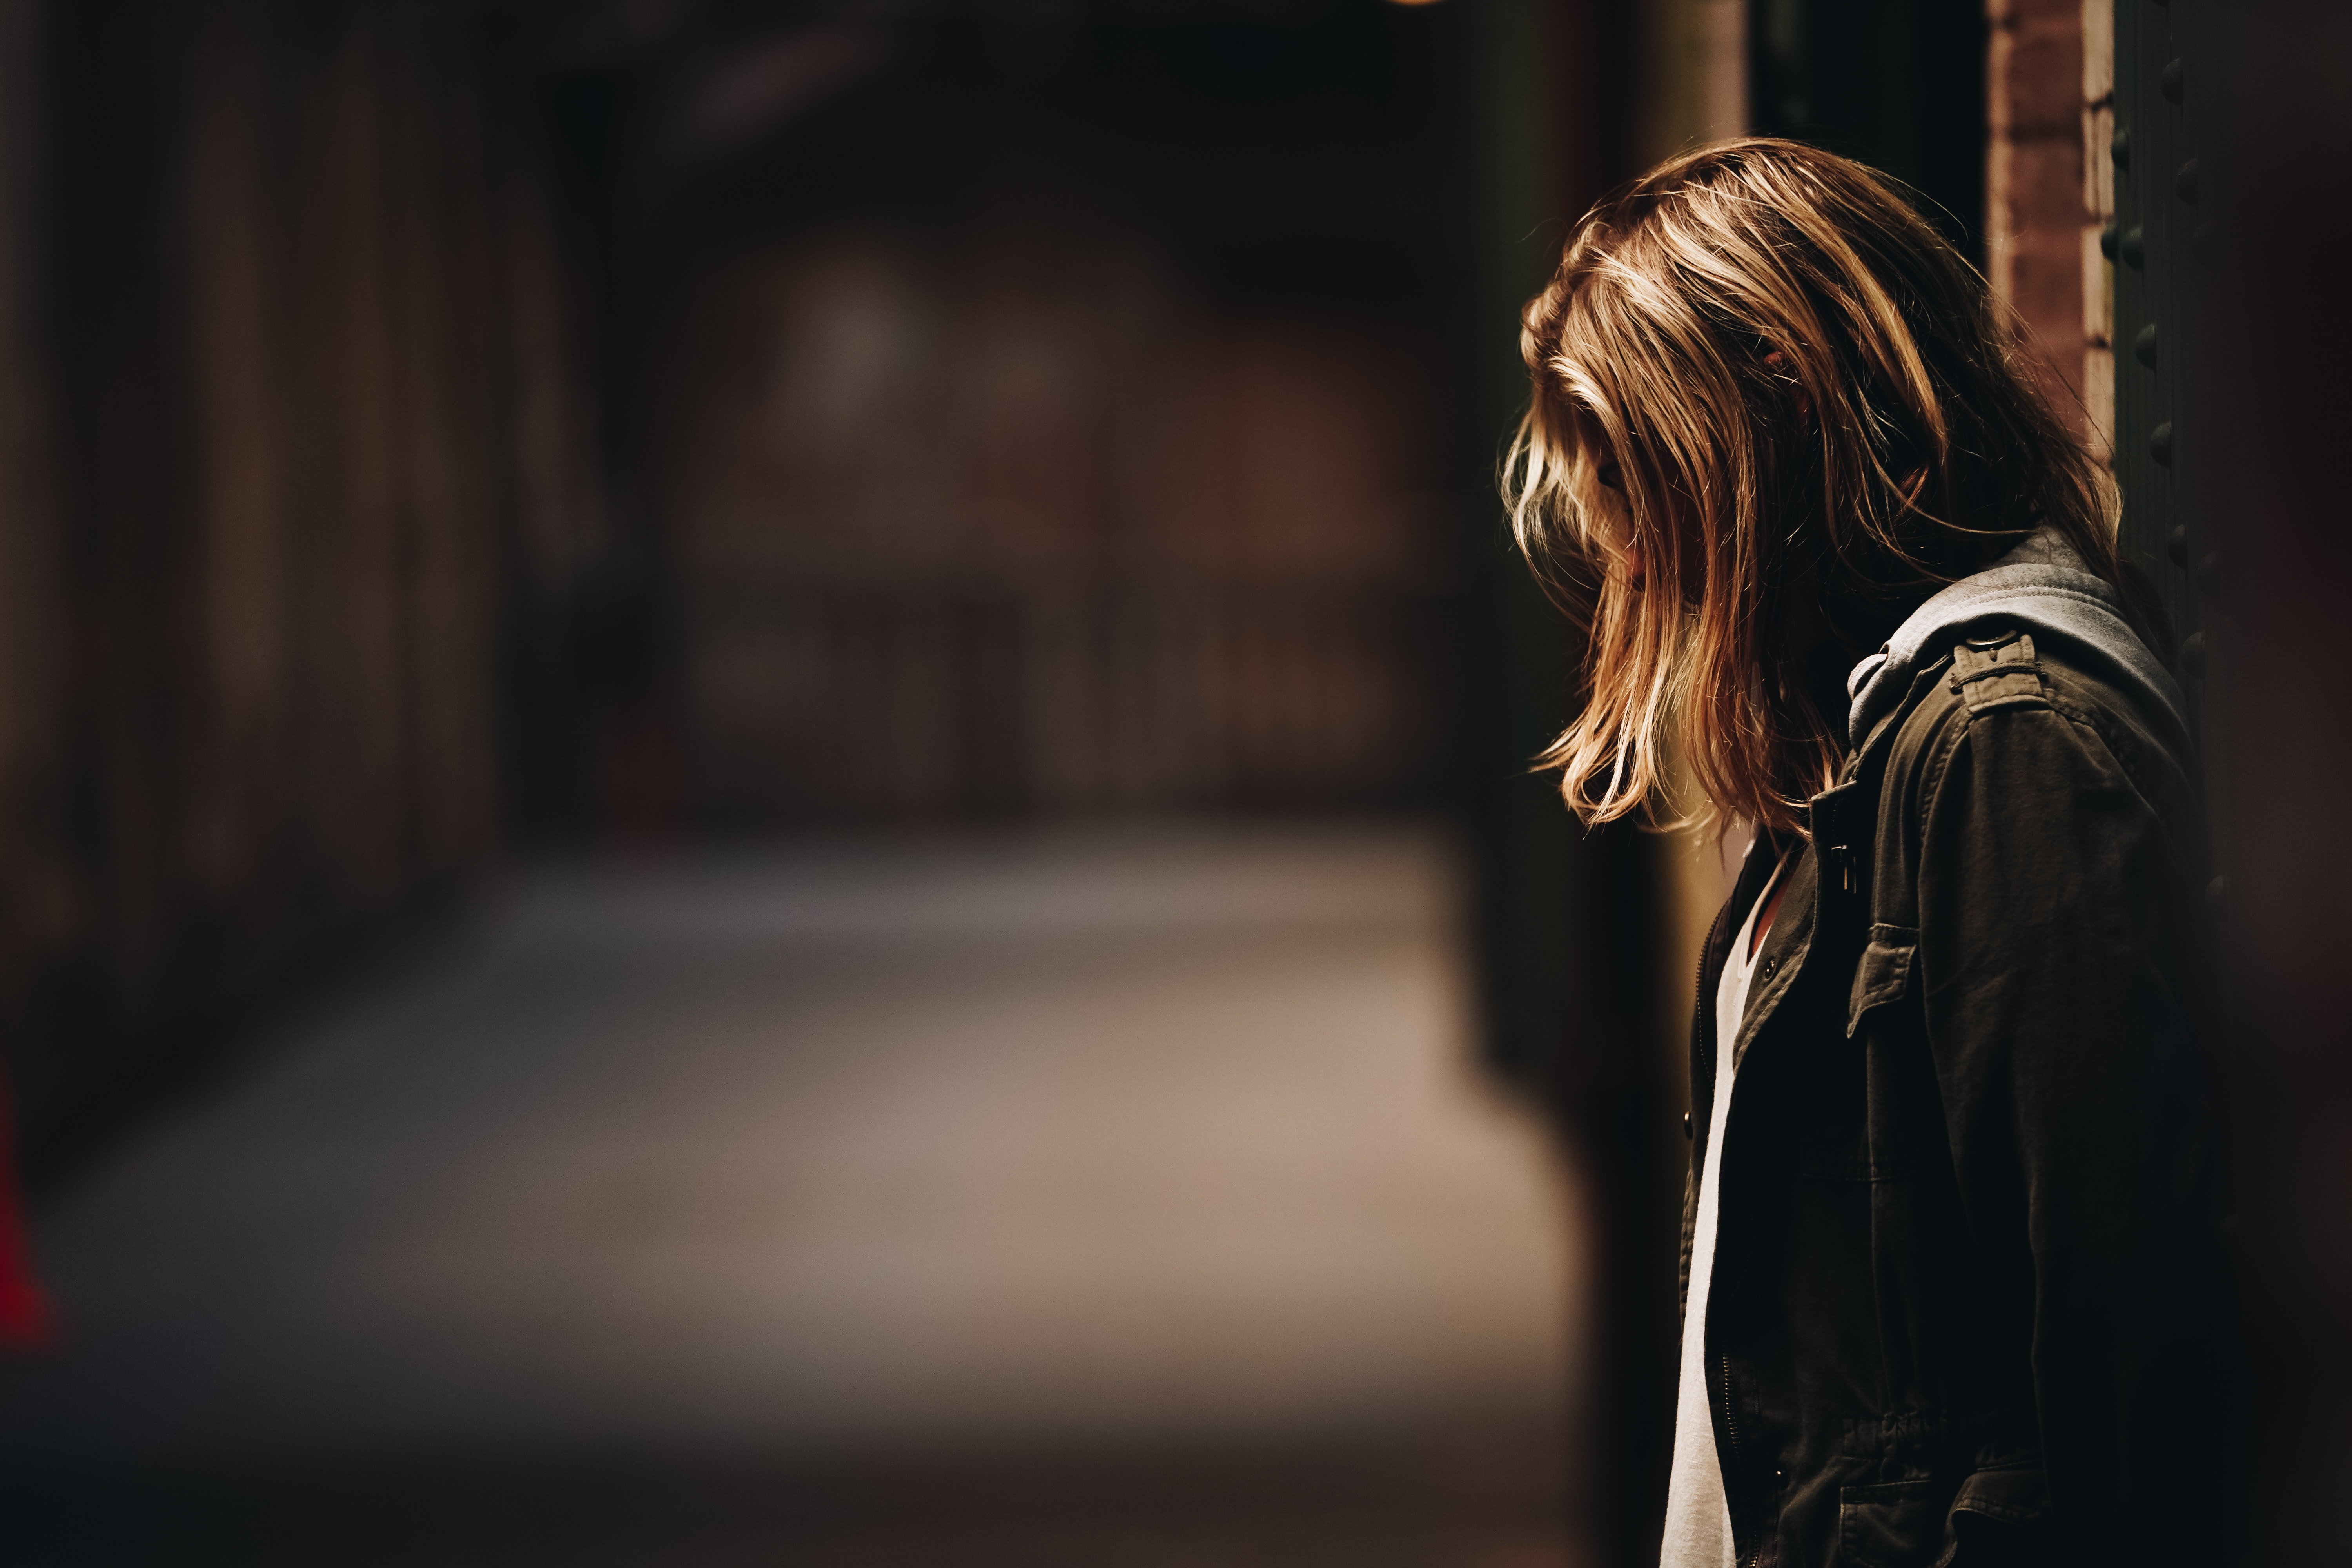 Student Mental Health Issues Returning to School During the Pandemic